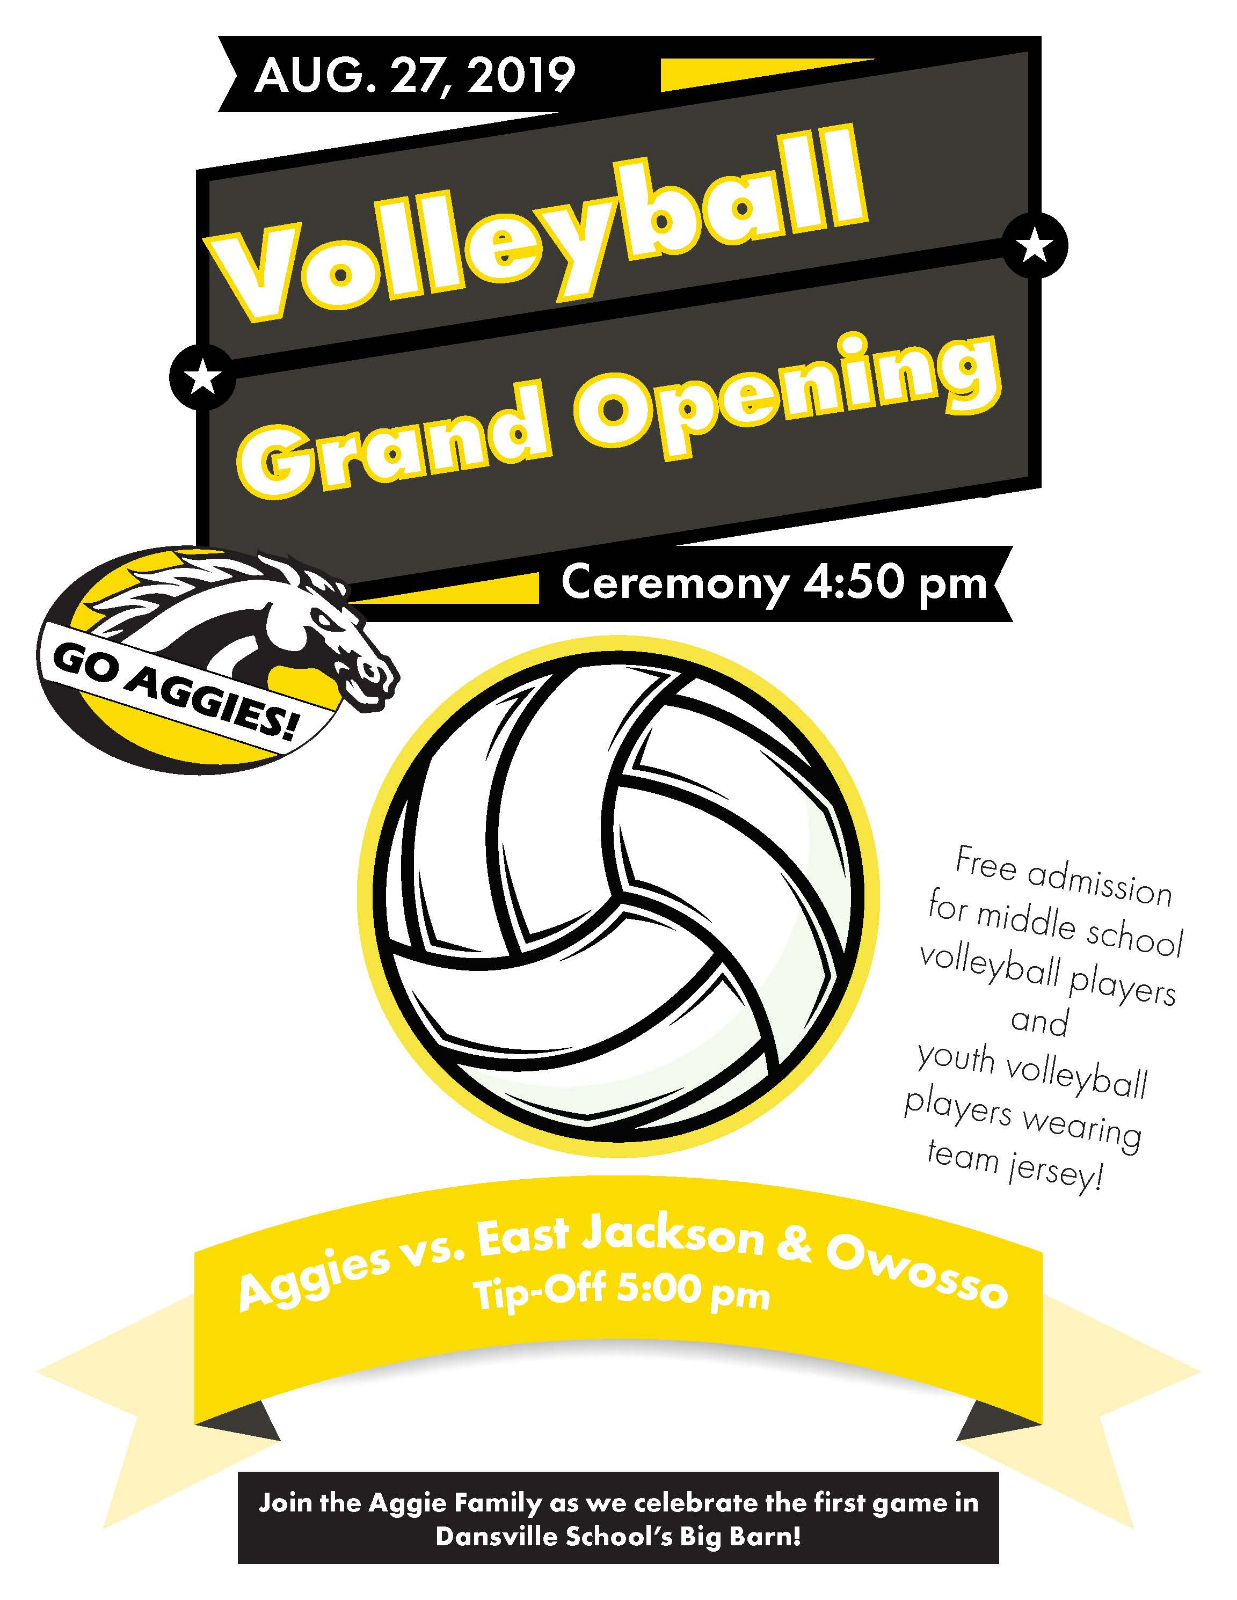 Volleyball Grand Opening Scheduled for August 27